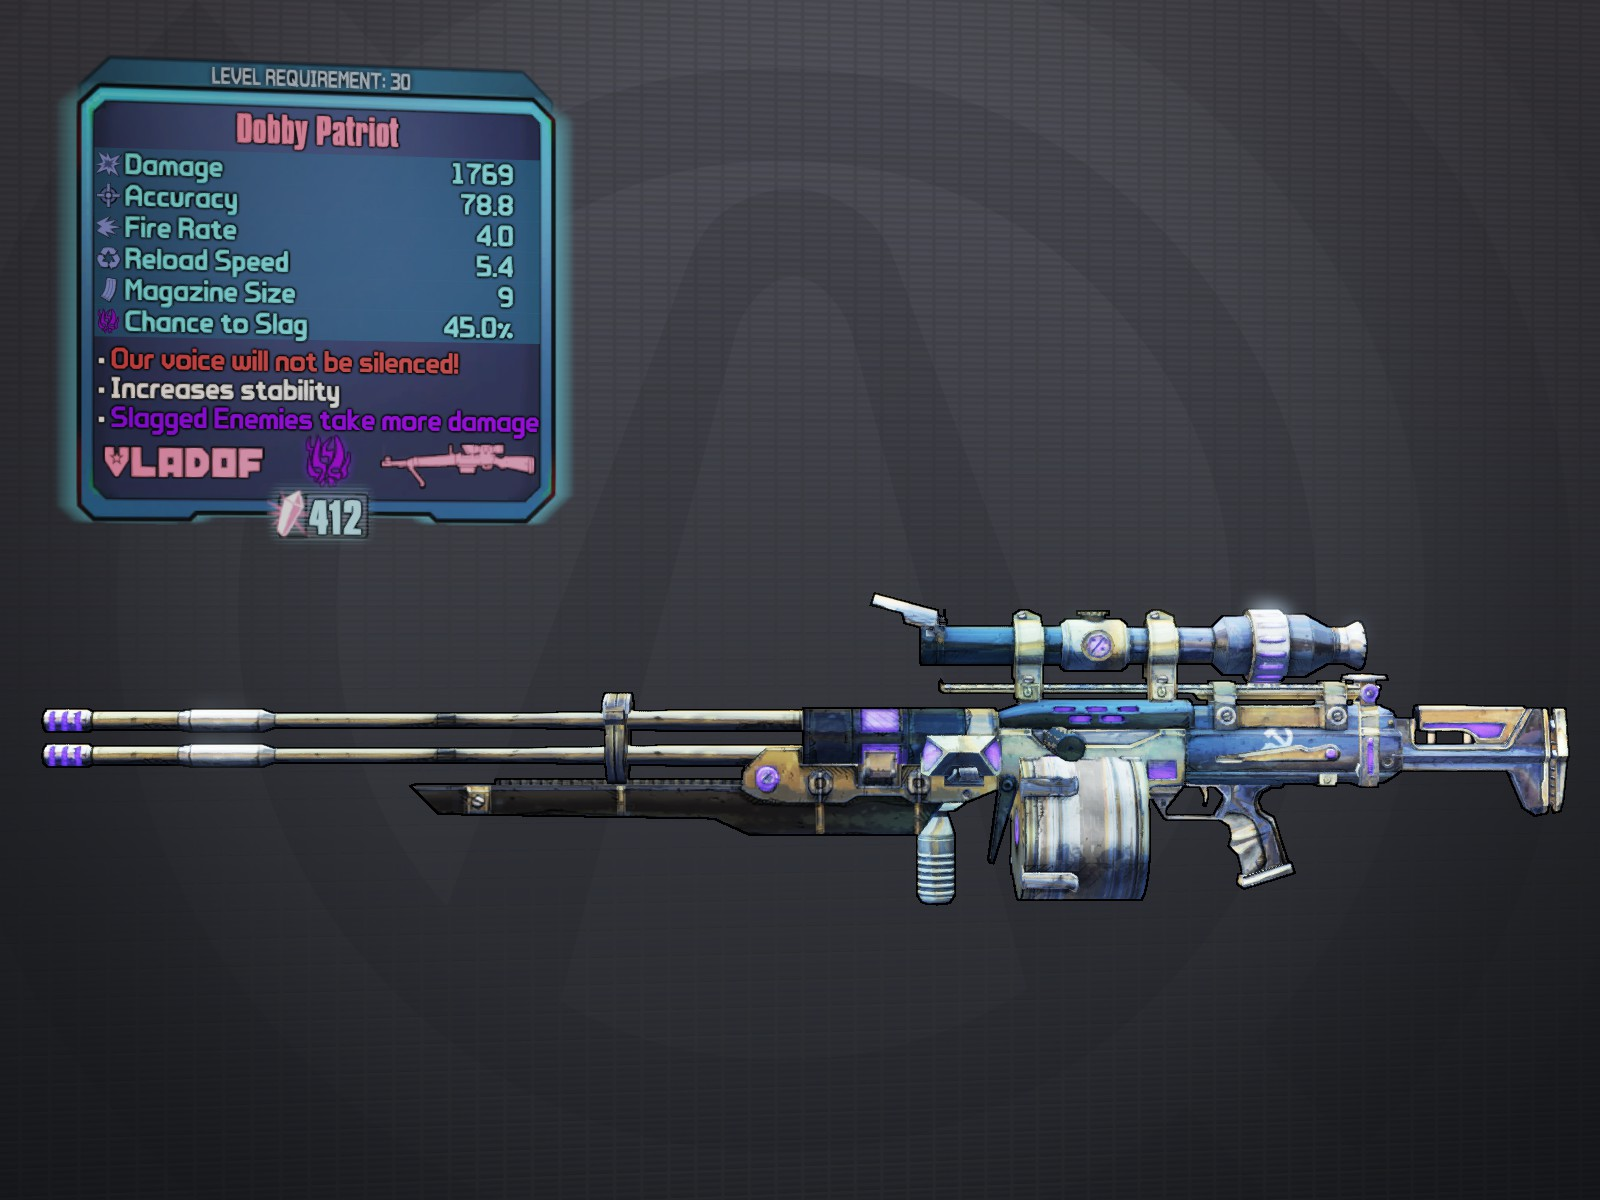 Patriot (sniper rifle)